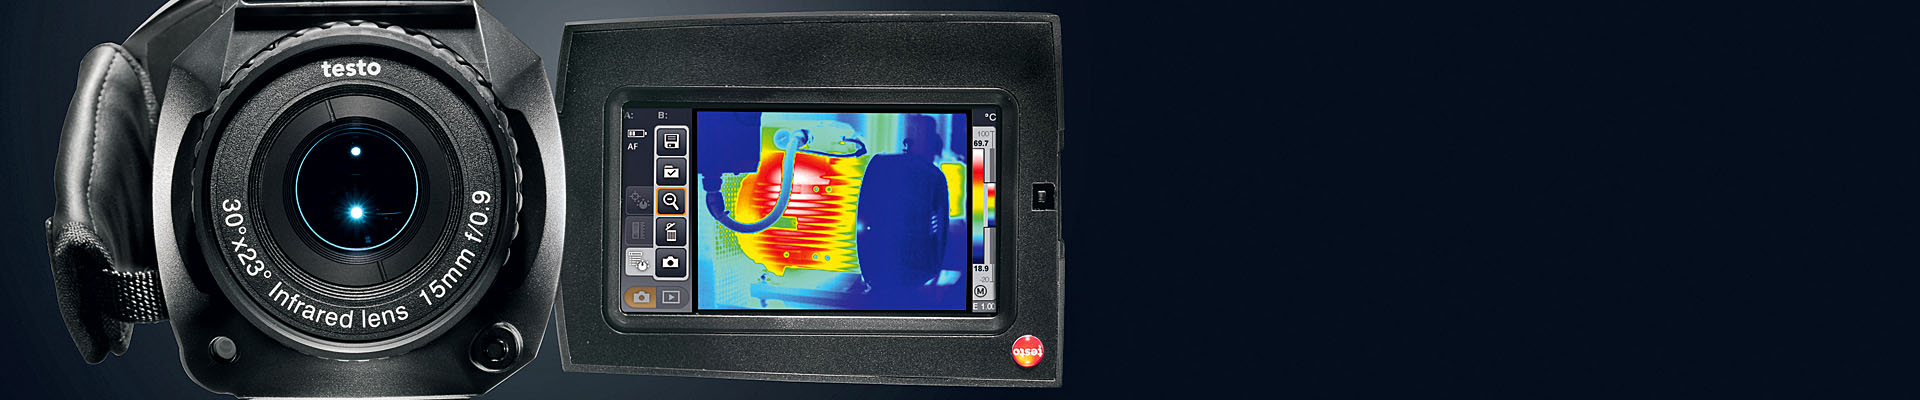 thermal imagers by testo